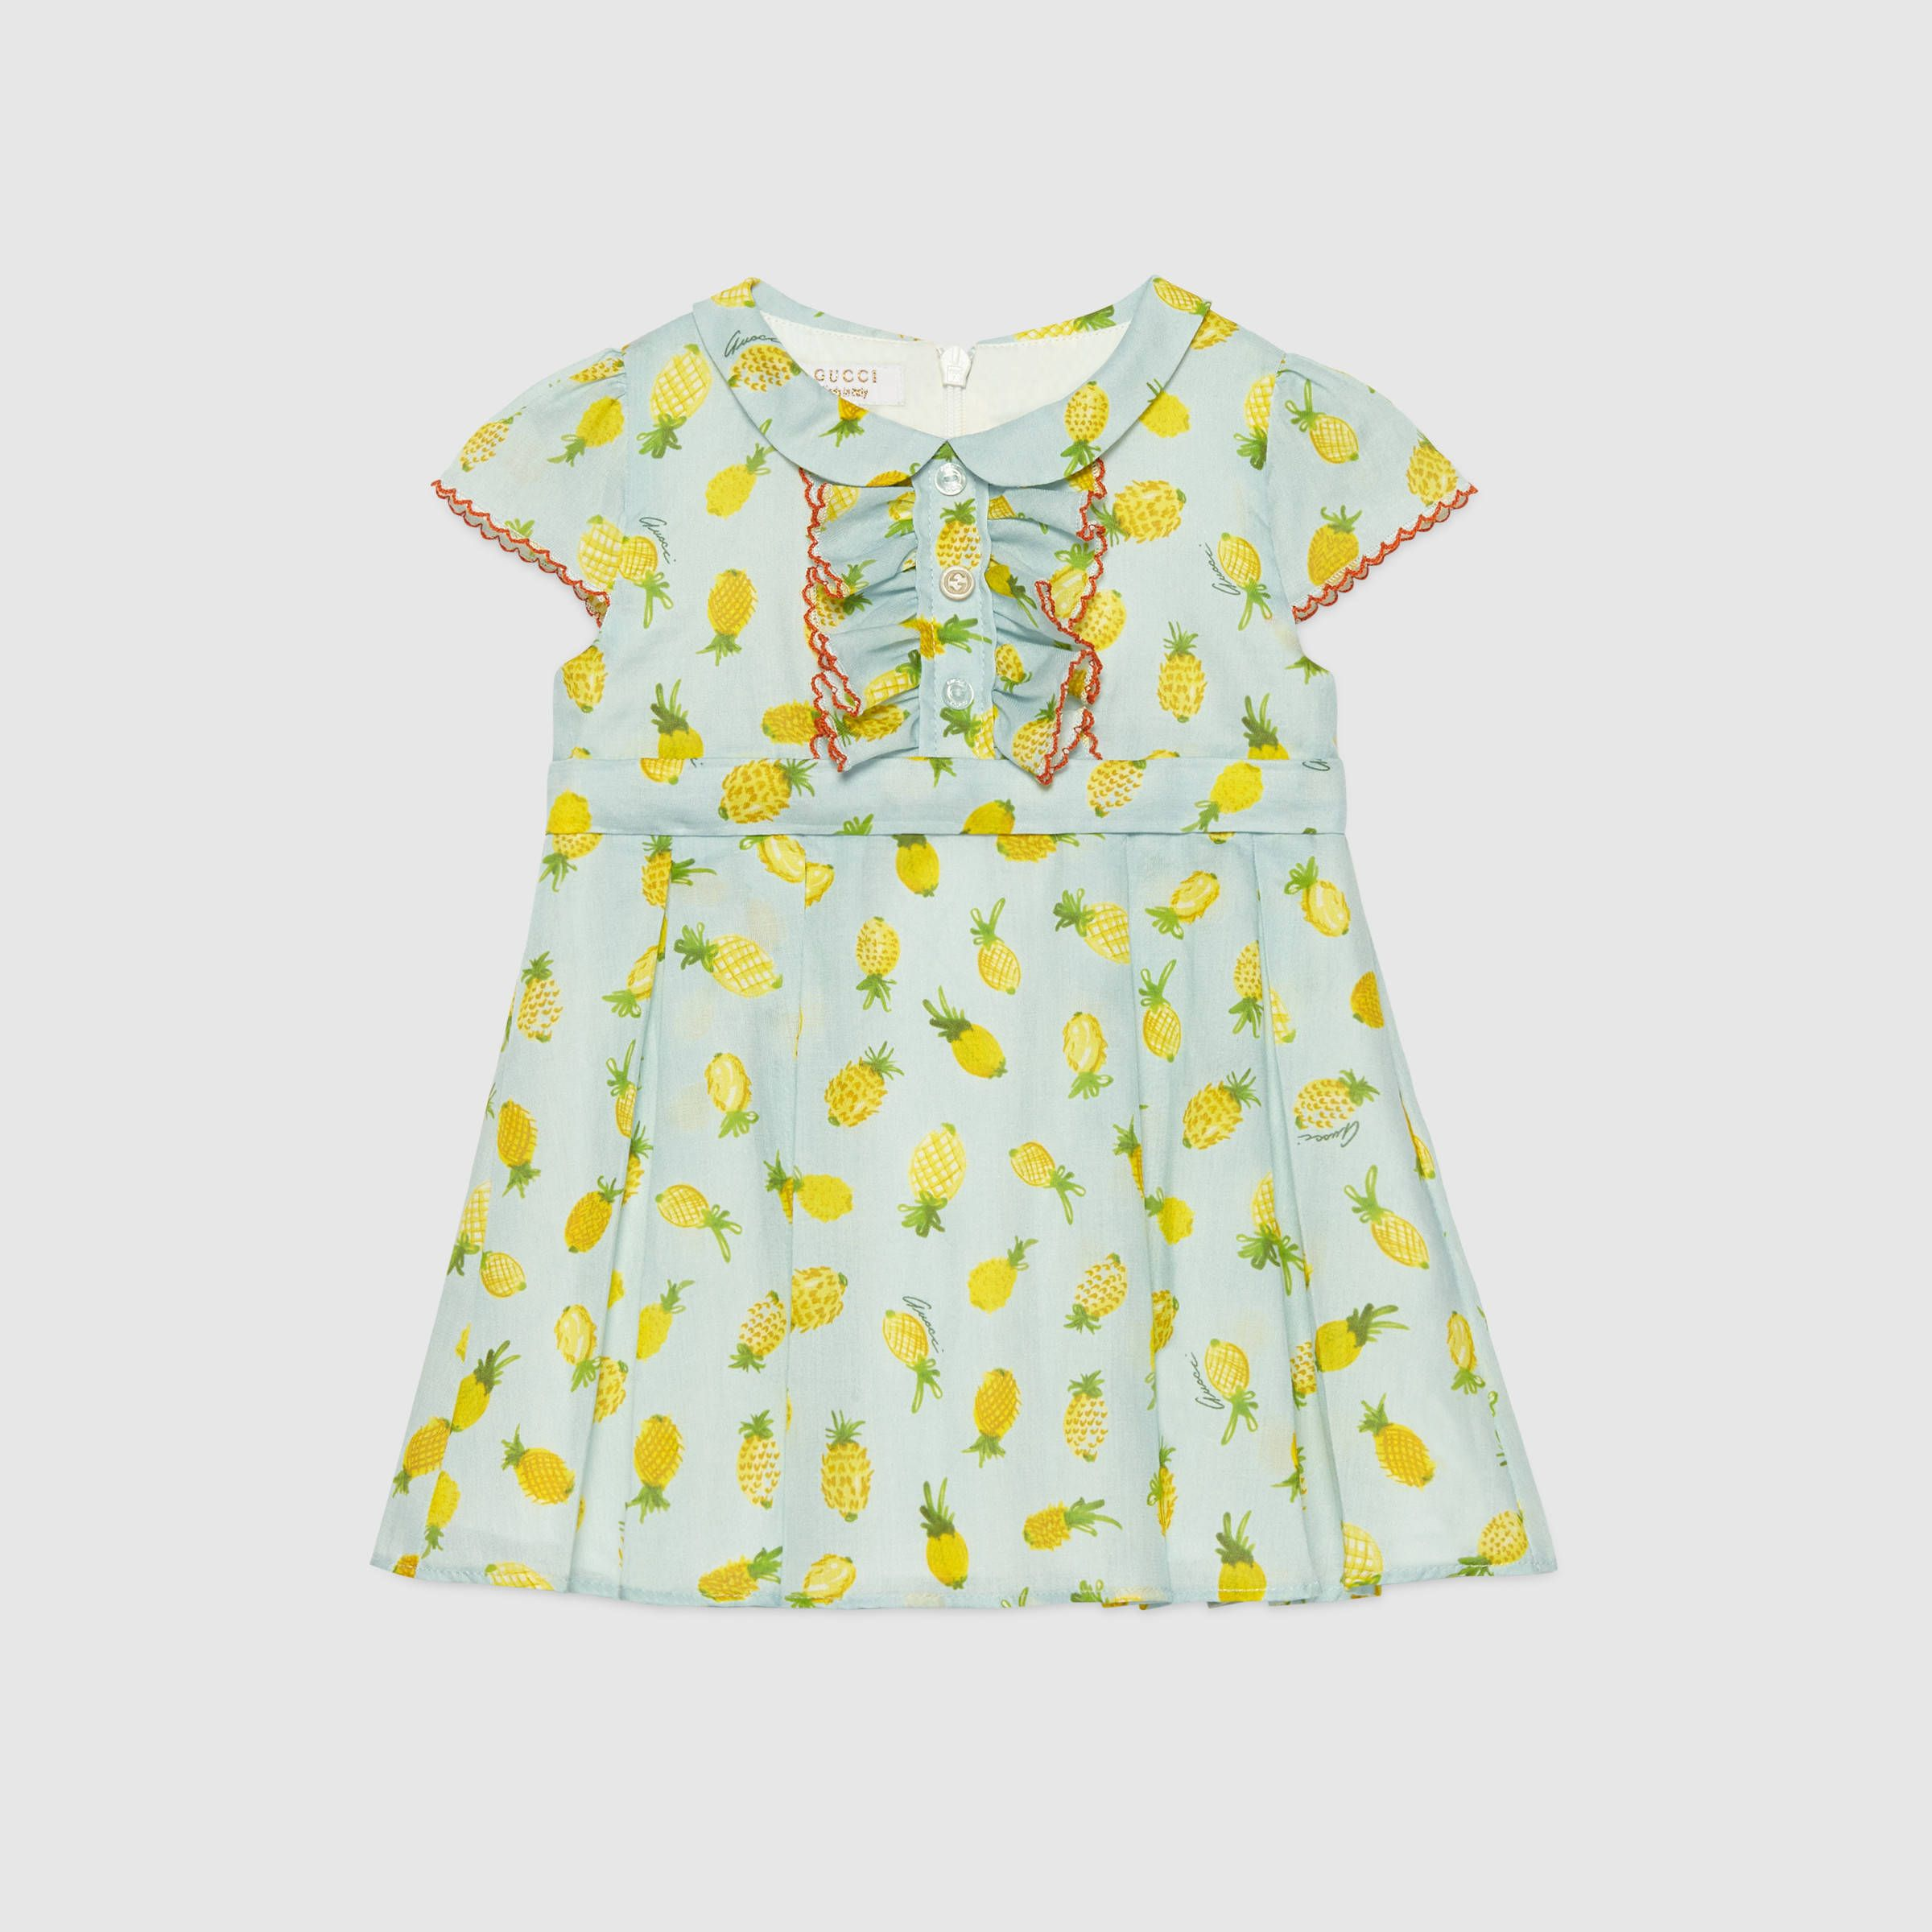 Gucci Baby pineapple print cotton dress Things I love